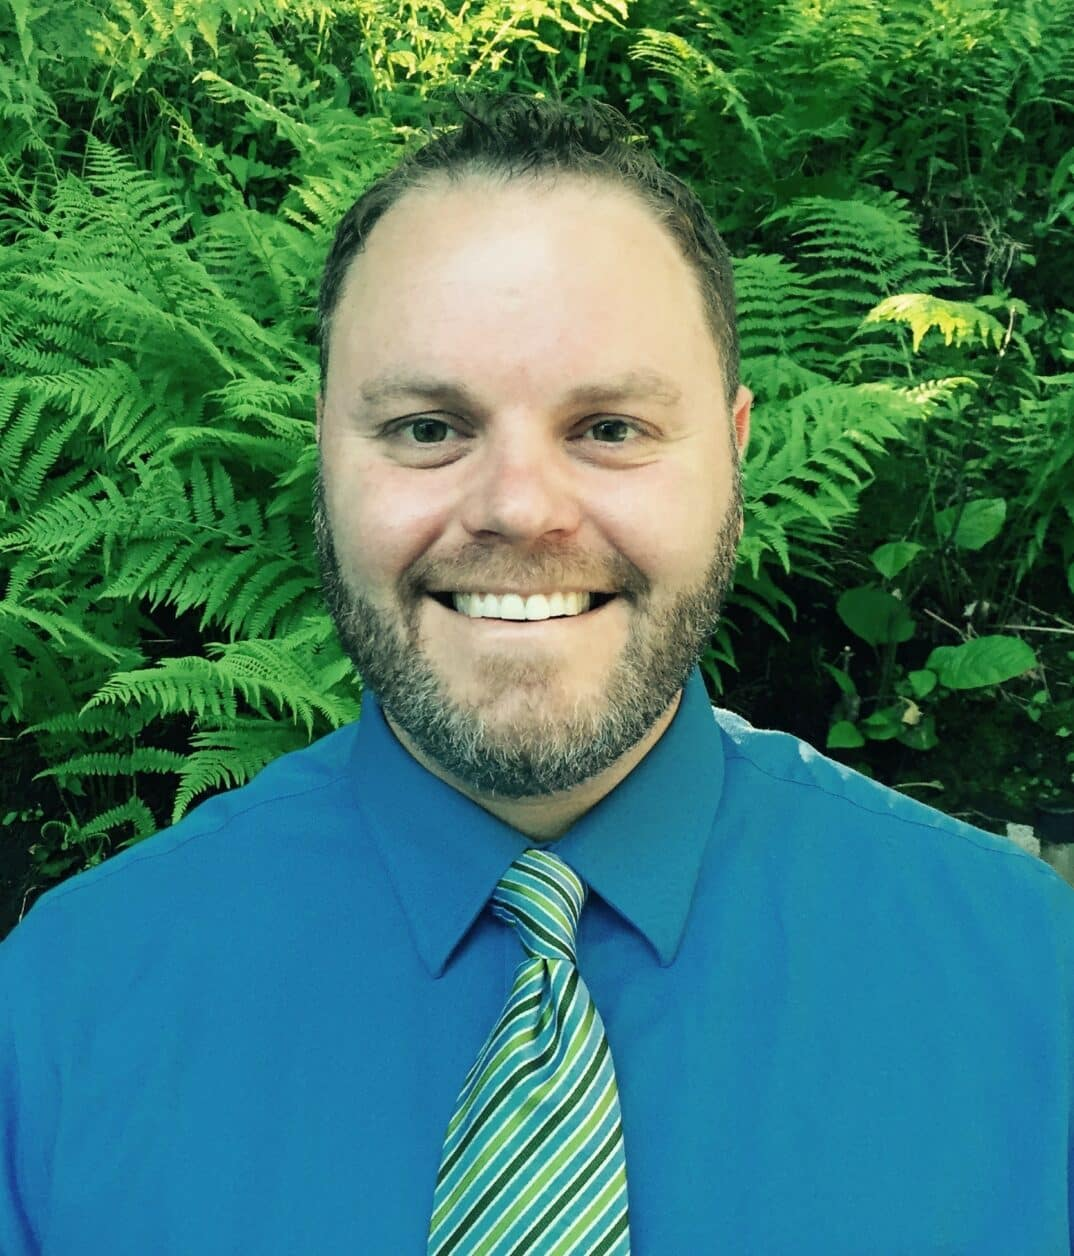 Nate Ball, Admissions and Conferences